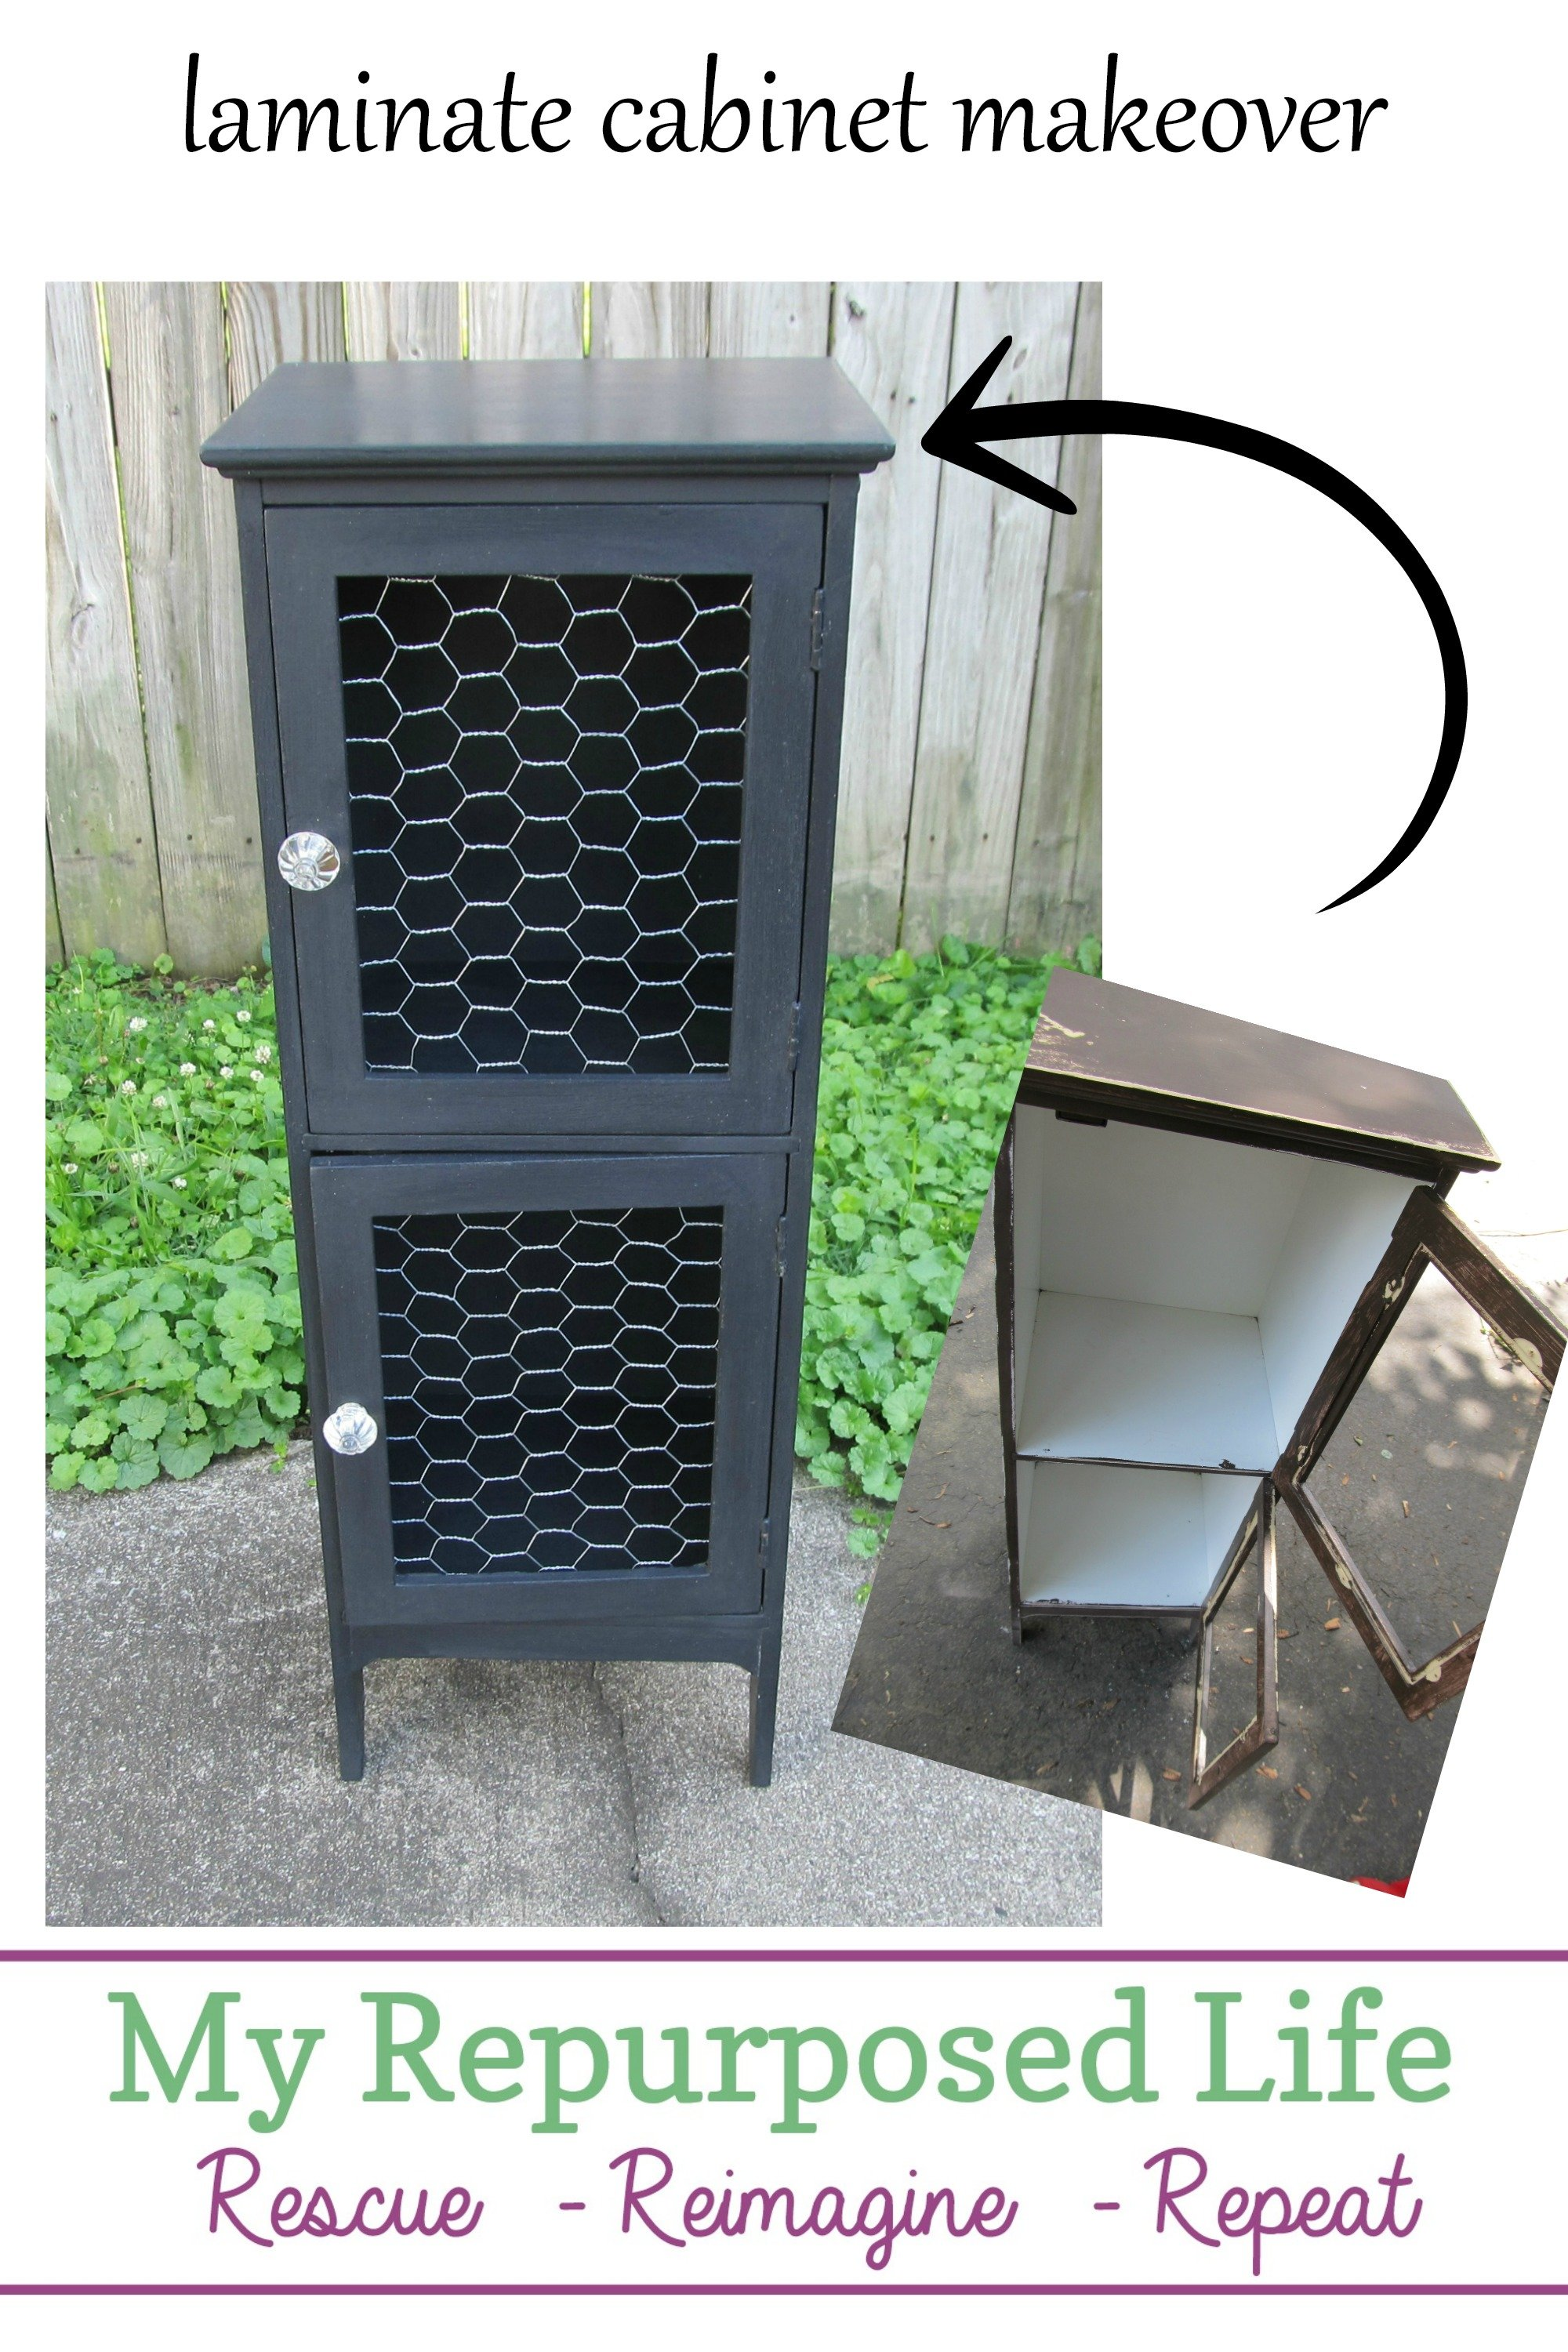 Someone tried to rescue this laminate cabinet, but they didn't know the tricks of the trade! A very inexpensive makeover using paint and chicken wire you may already have on hand. #MyRepurposedLife #repurposed #furniture #makeover #laminate #cabinet  via @repurposedlife